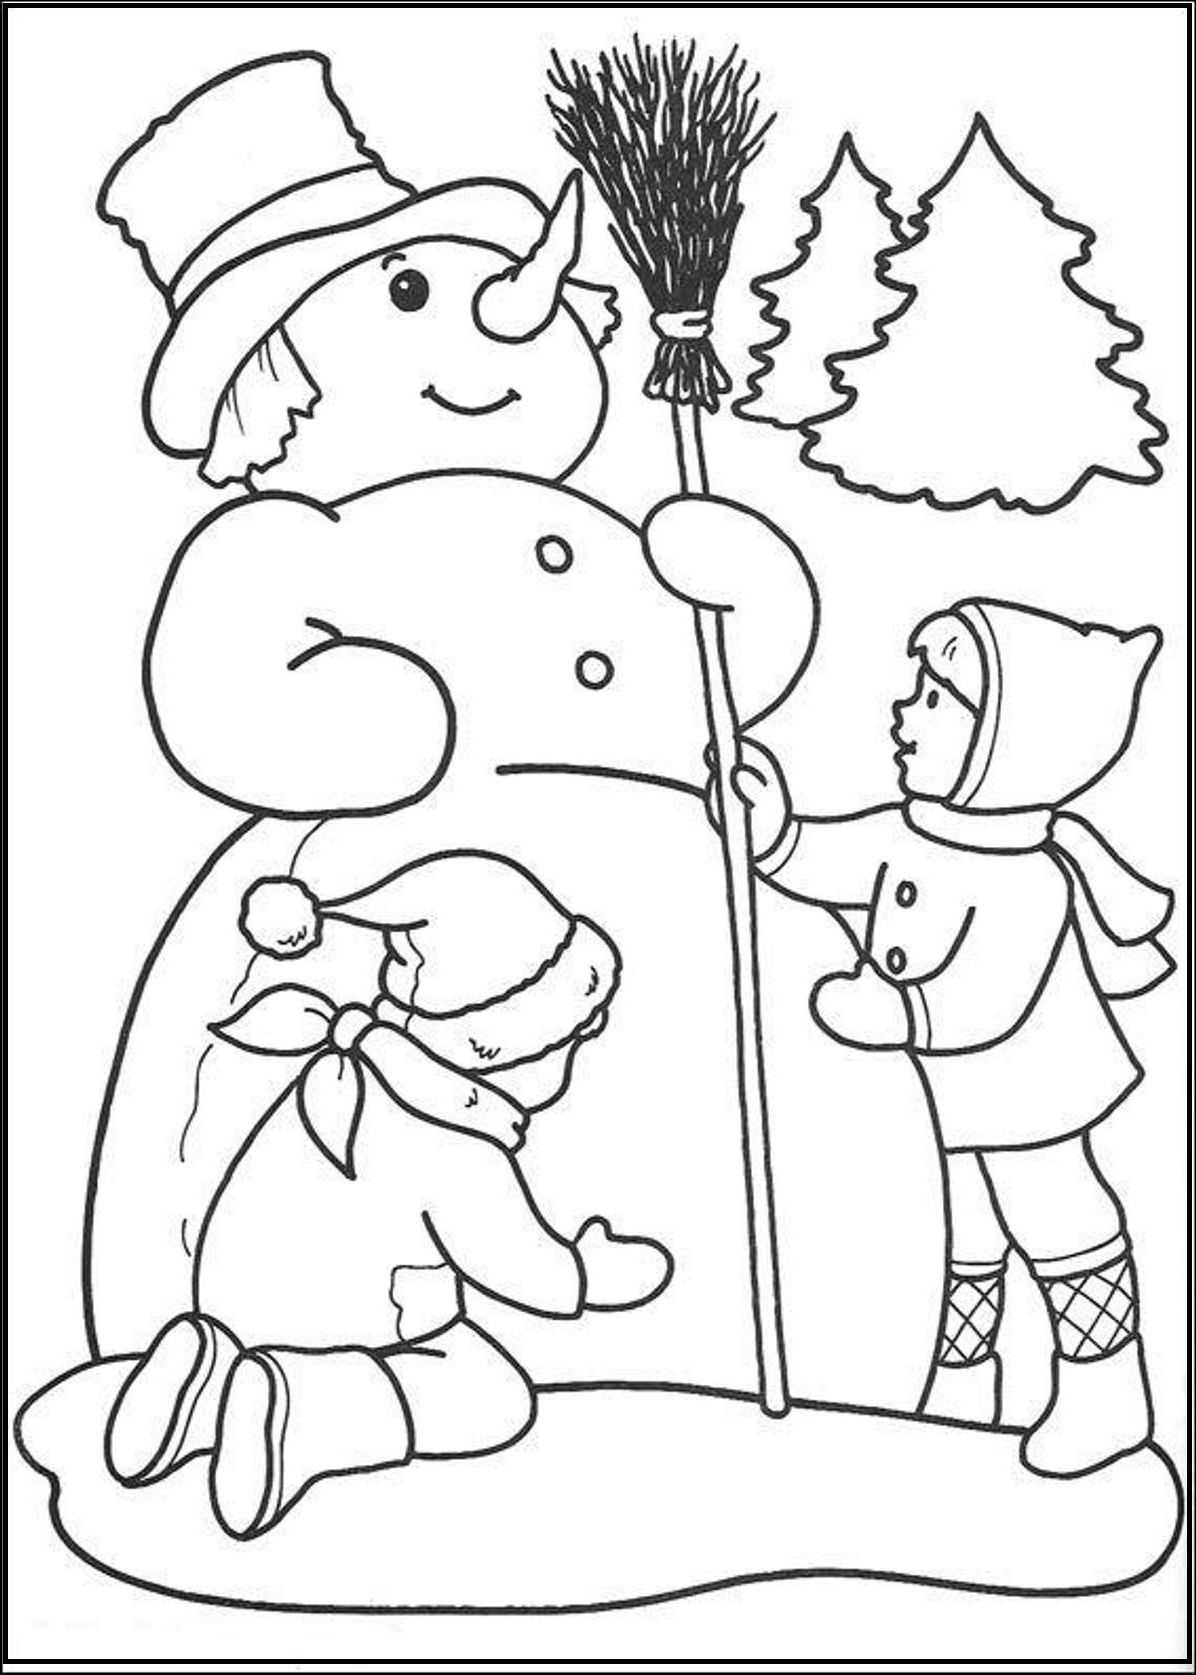 Snowman Coloring Pages Snowman Coloring Pages Dinosaur Coloring